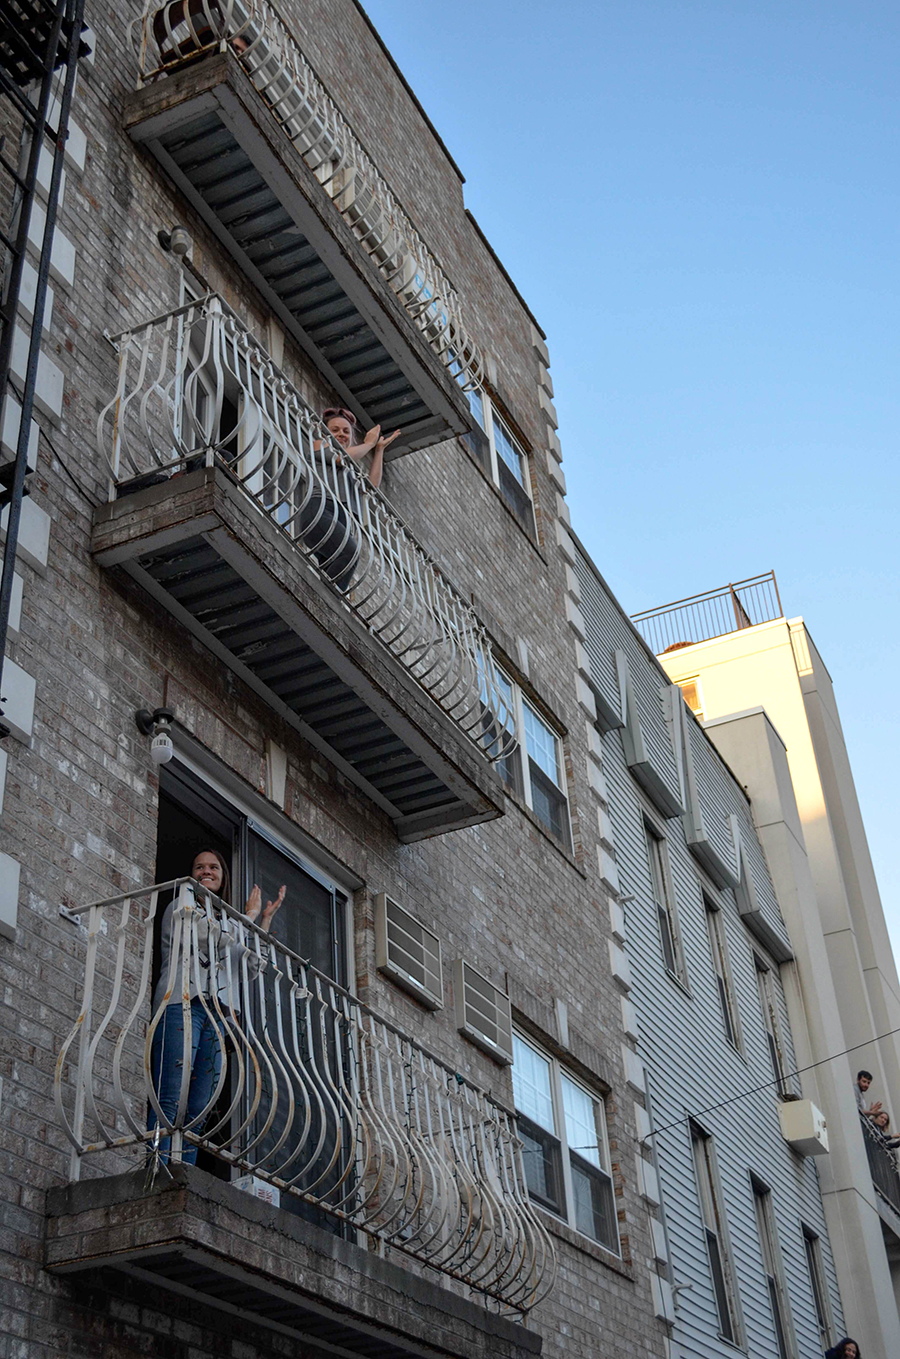 Neighbors are seen applauding essential workers from their balconies on Dupont Street.